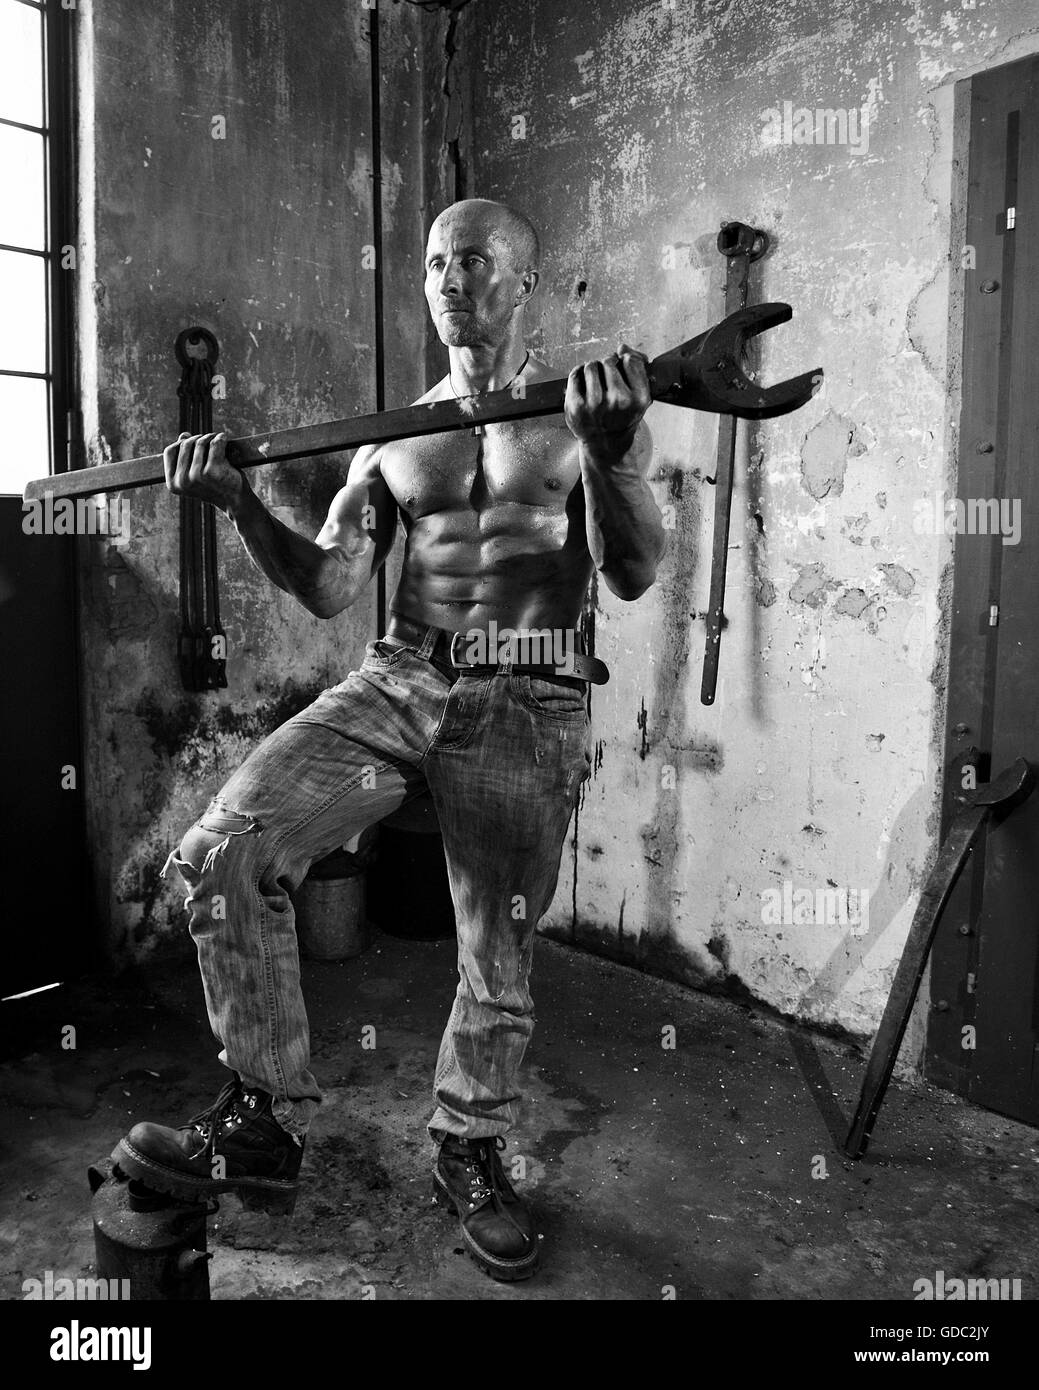 concepts,body cult,hard,guy,sweat,man,strength,muscles,workers,wrenches - Stock Image